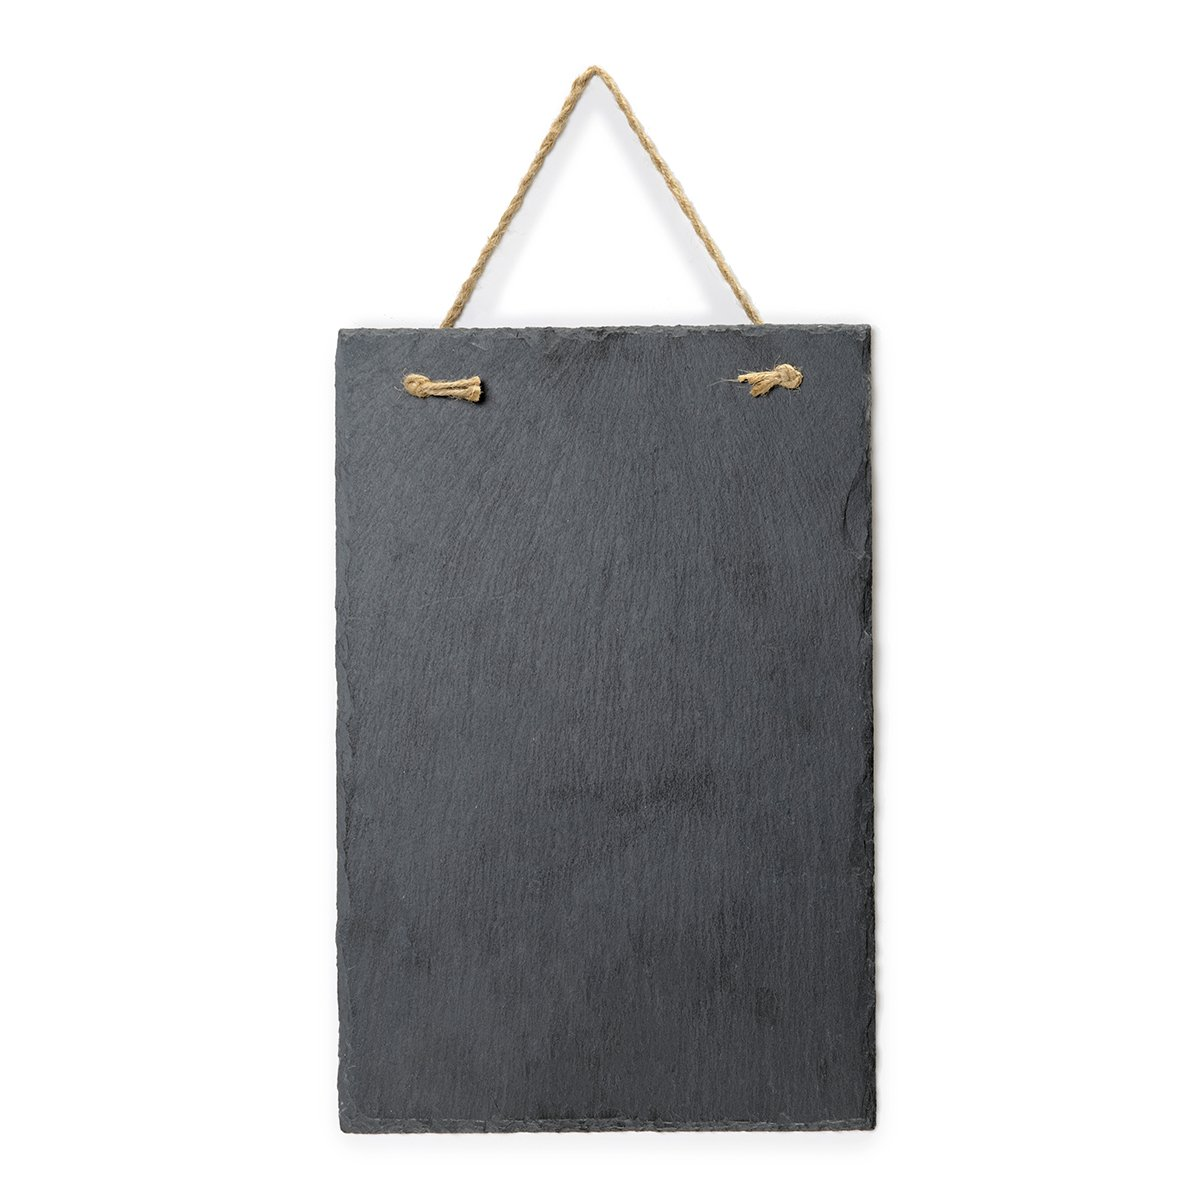 Vintage Frameless Slate Chalkboard Sign (8''x12'') - Decorative Hanging Chalk Board for Rustic Wedding Signs, Kitchen Pantry & Wall Decor by VersaChalk (Image #7)